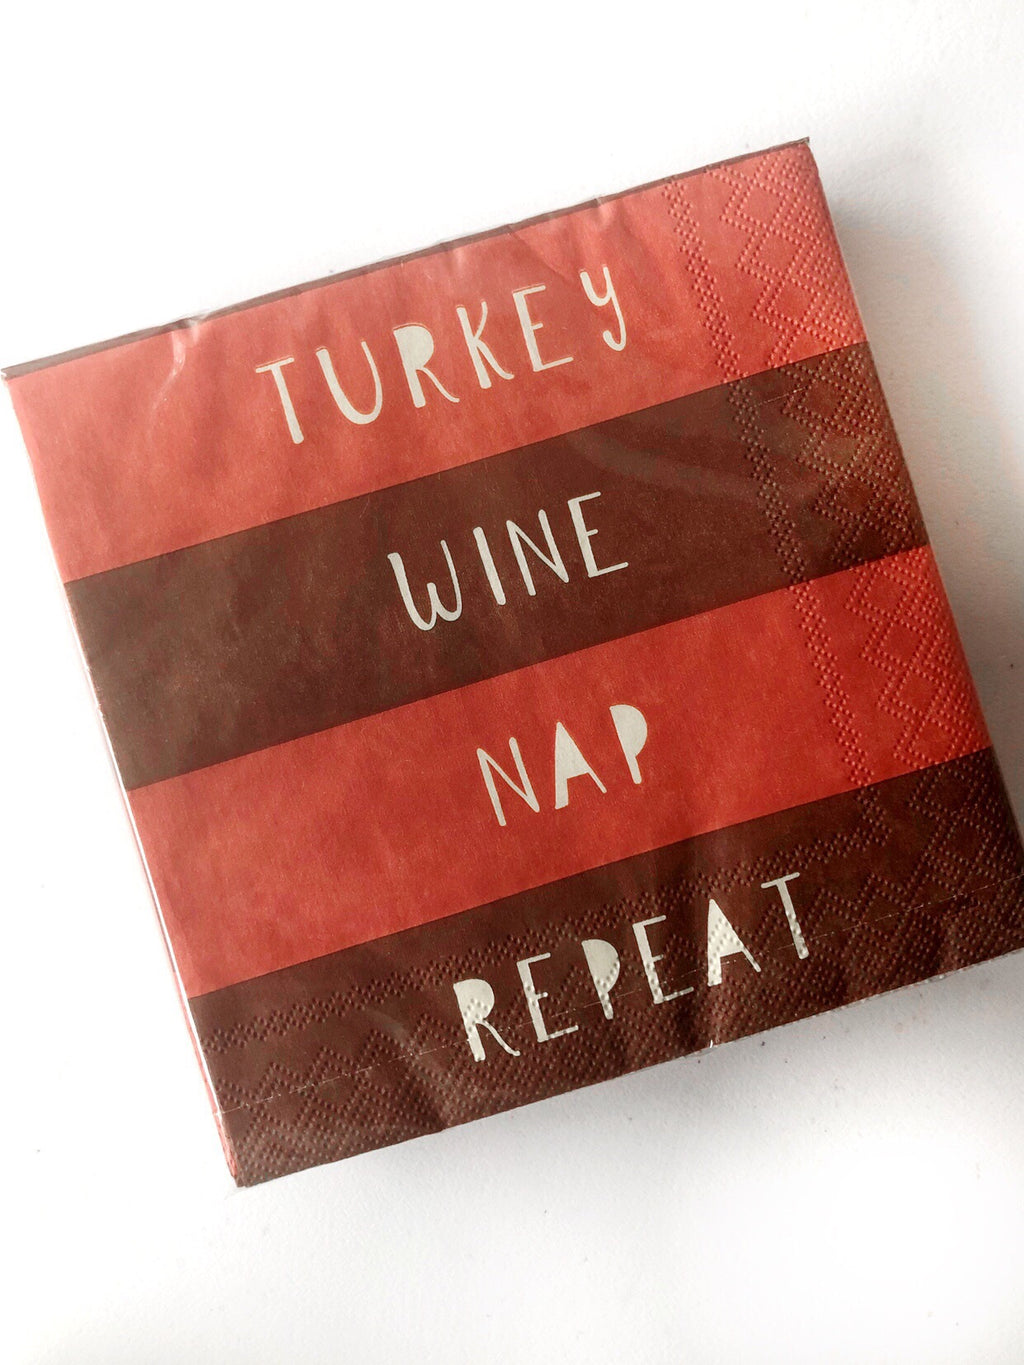 Turkey Wine Nap Repeat Cocktail Napkins